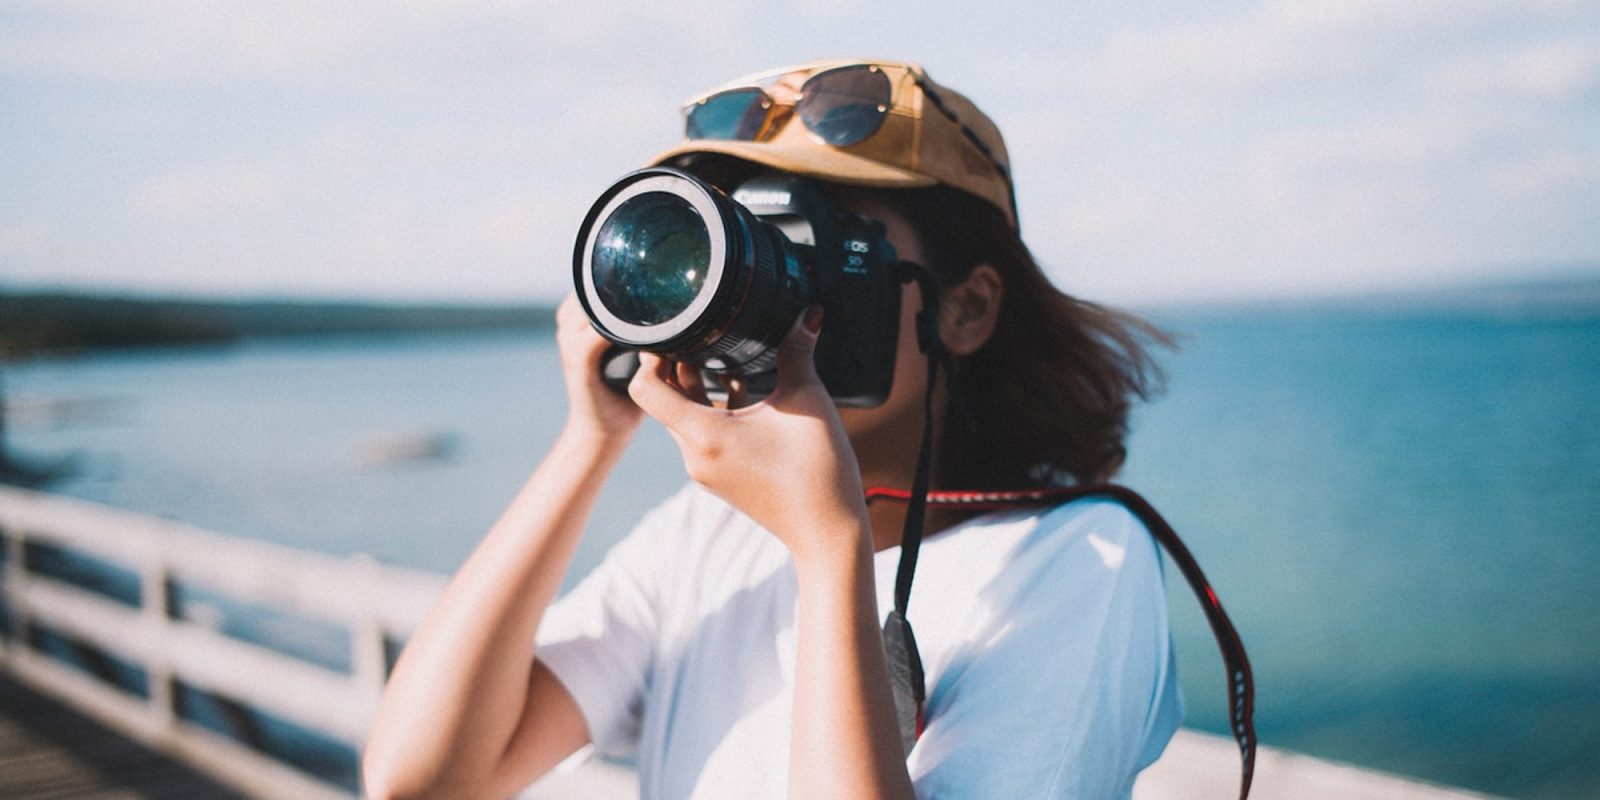 Become An Expert Photographer With 30 Hours Of Training For